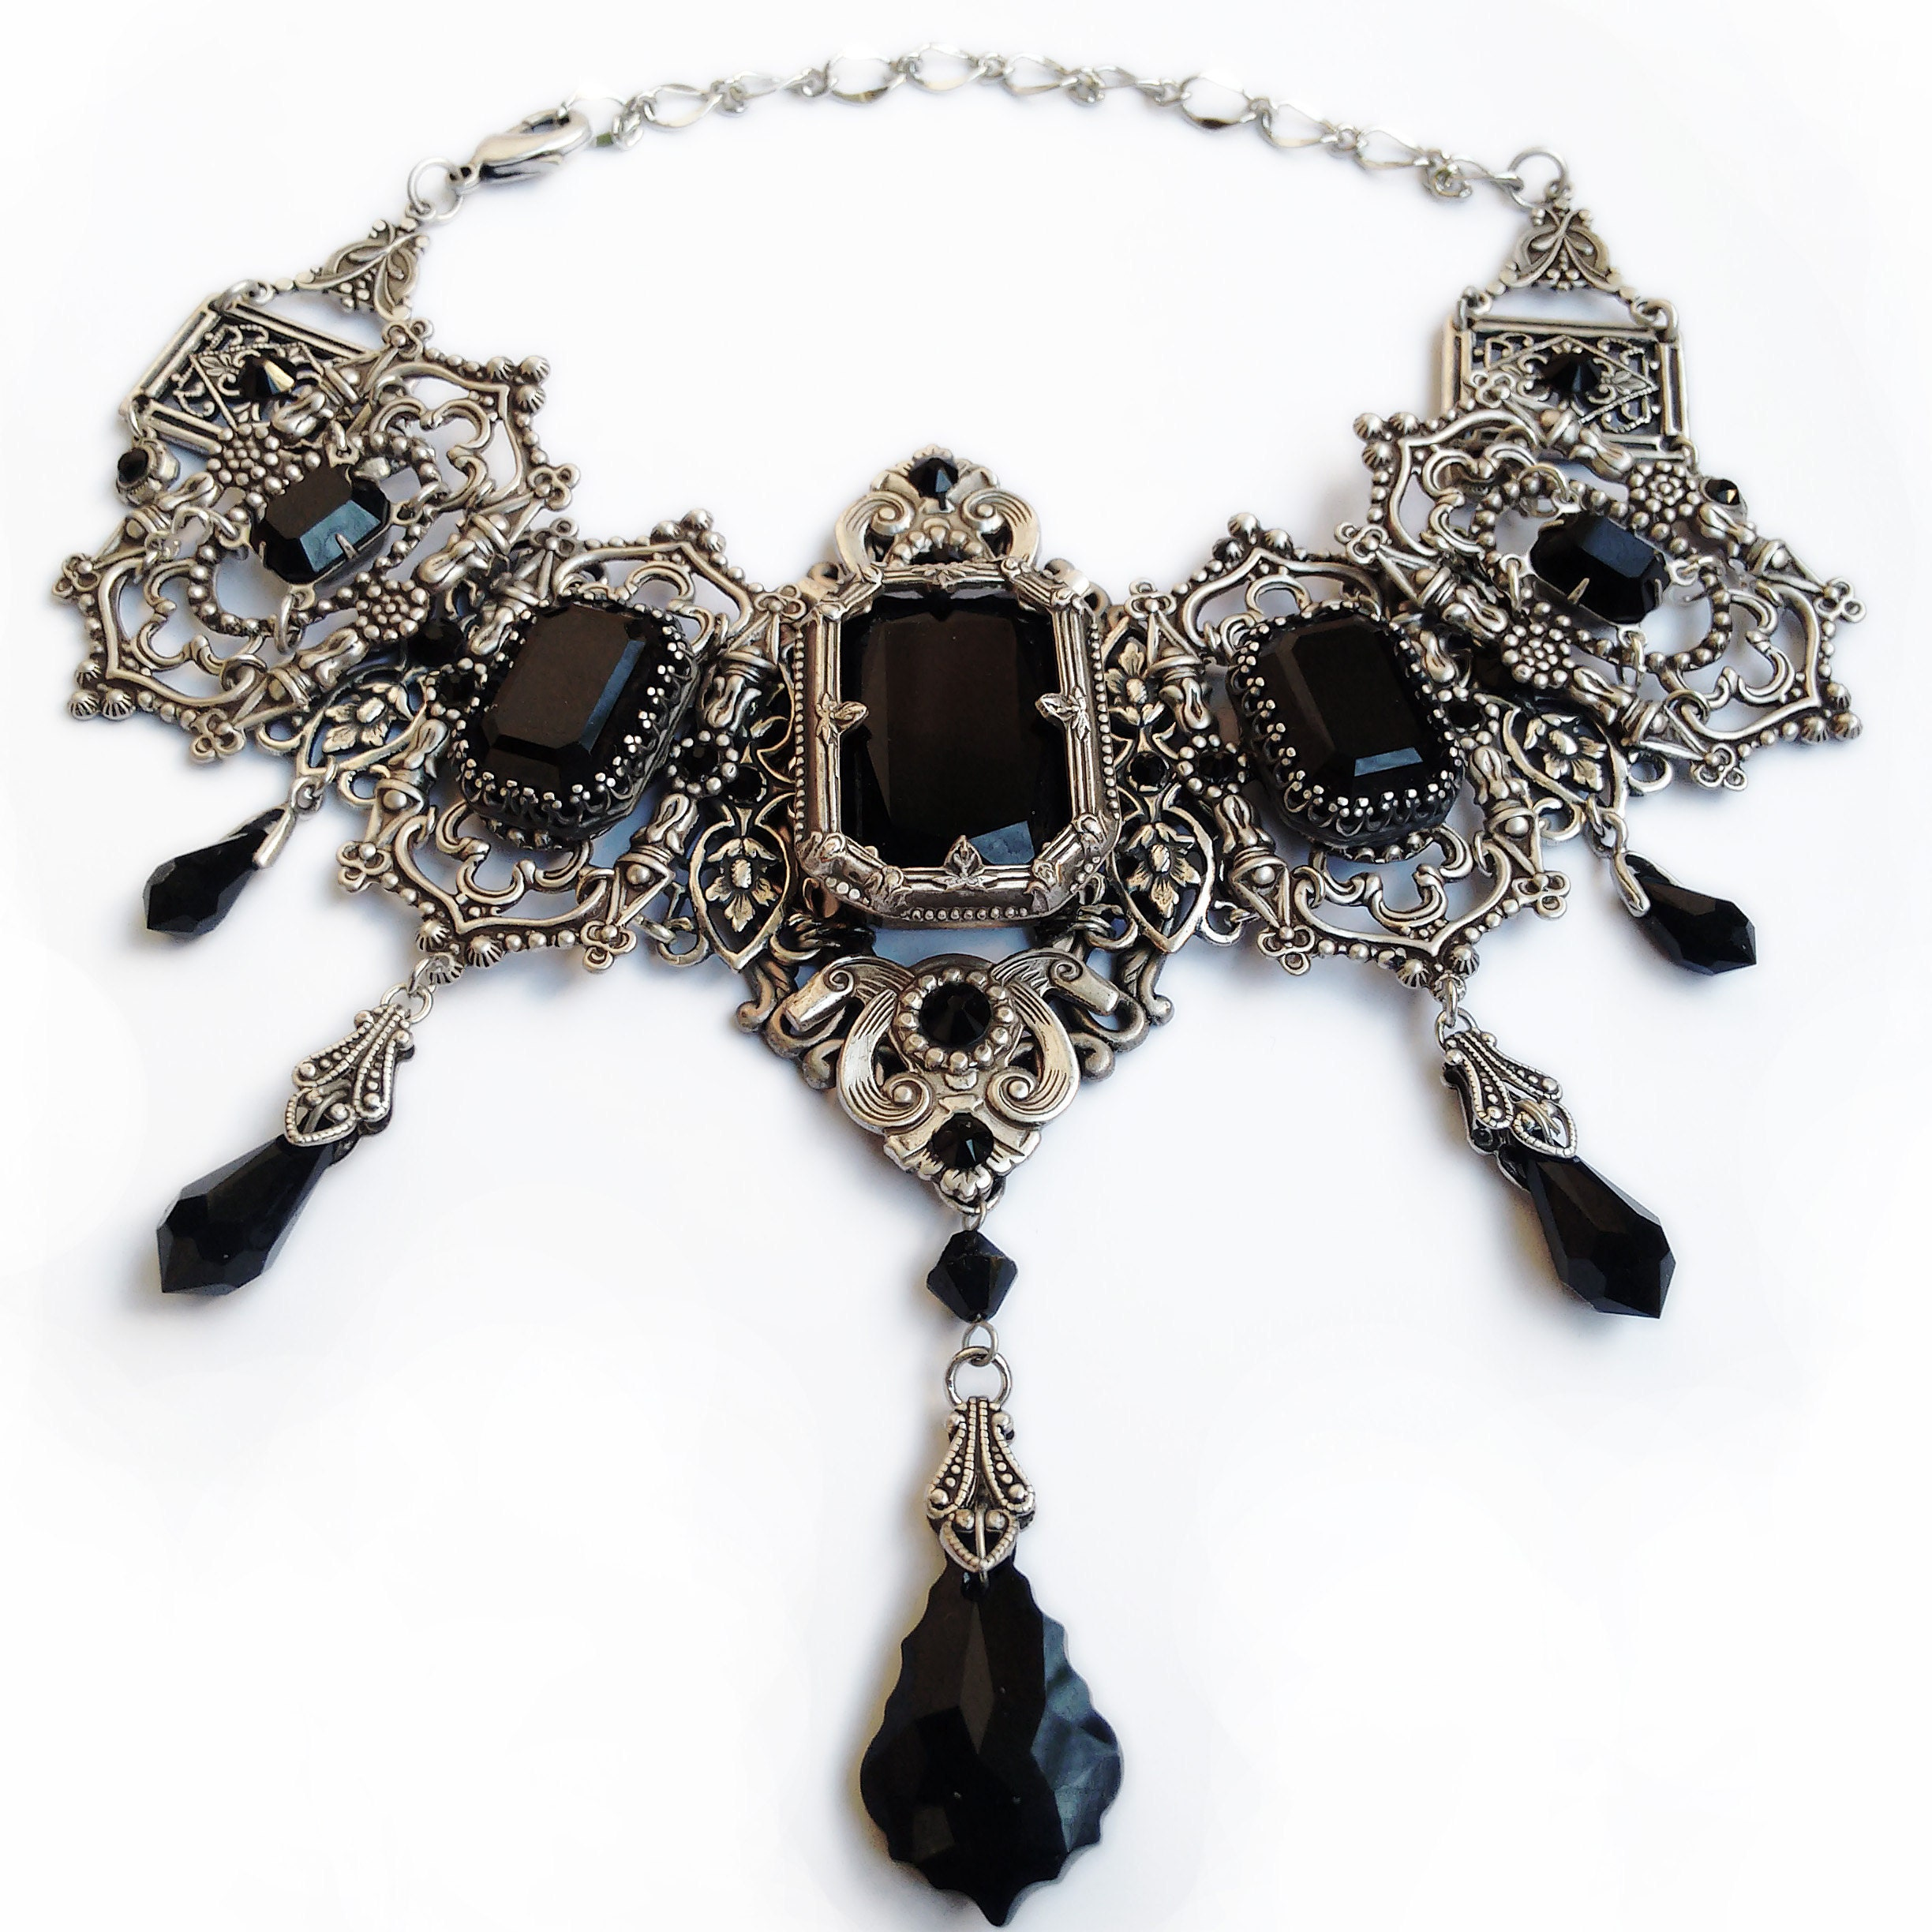 42fd638197 Victorian Gothic Jewelry Vintage Style Bridal Jewelry by Aranwen